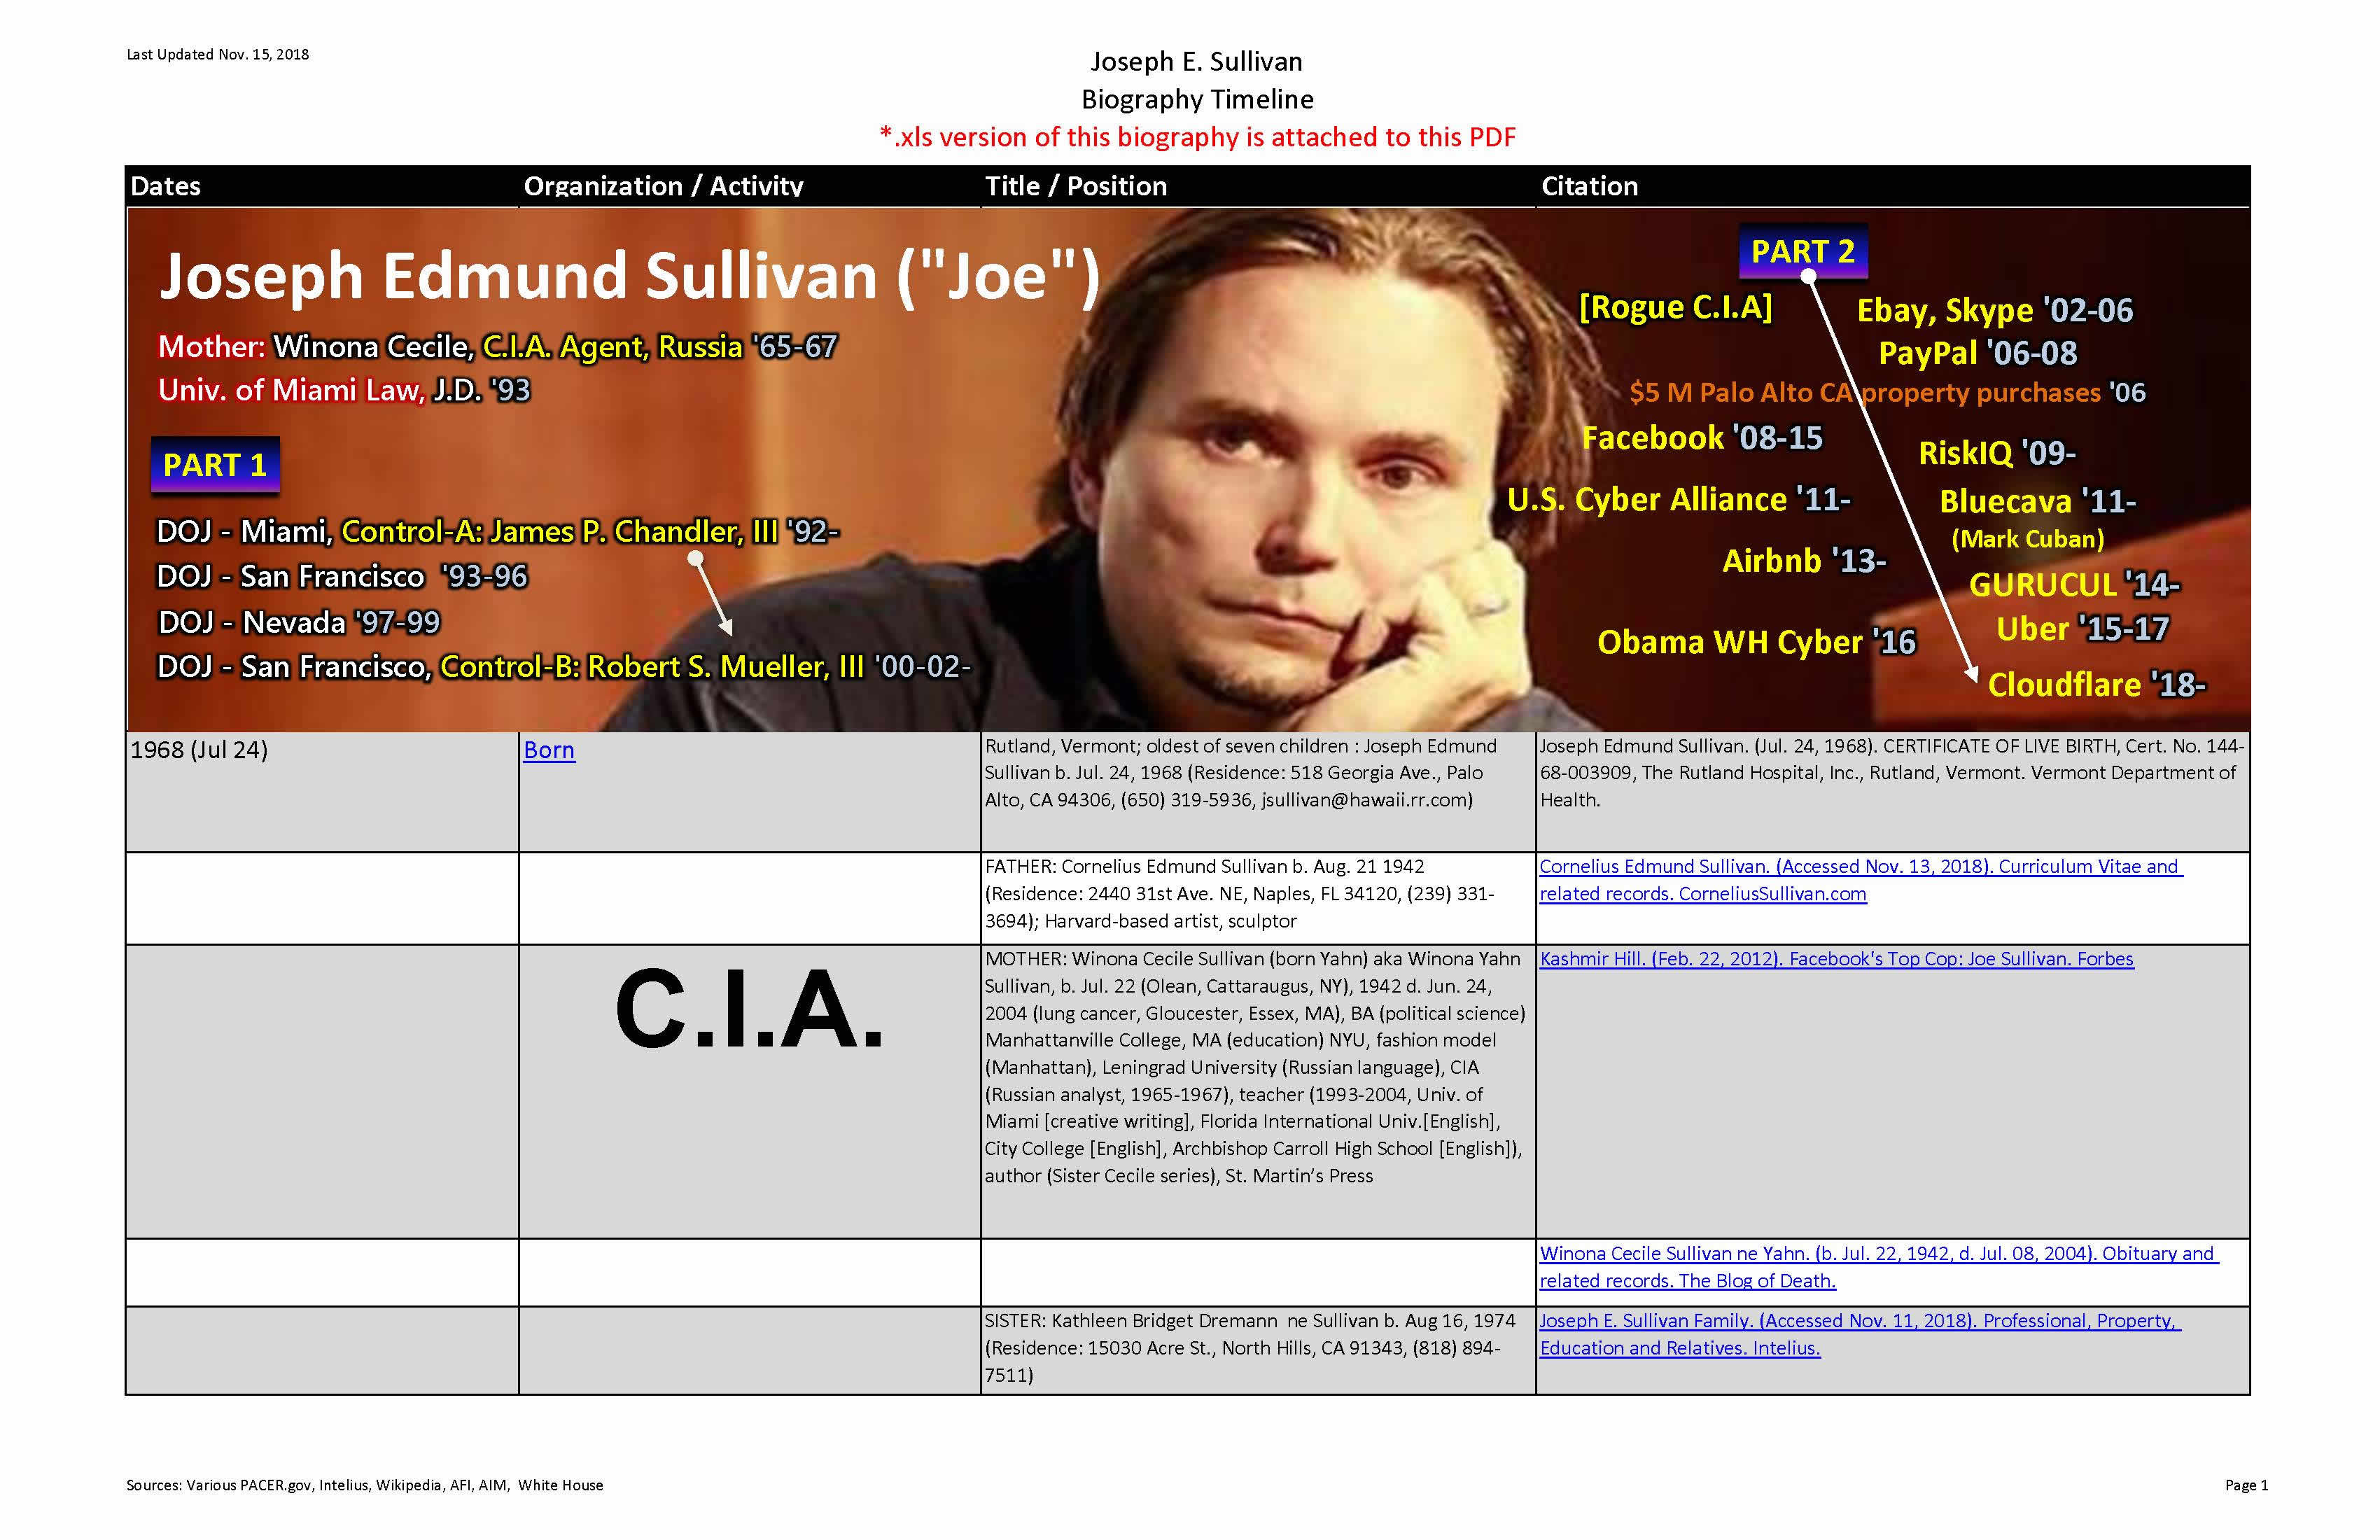 Joseph Edwin Sullivan. (Prepared Nov. 09, 2018). Biography and Timeline. Anonymous Patriots.